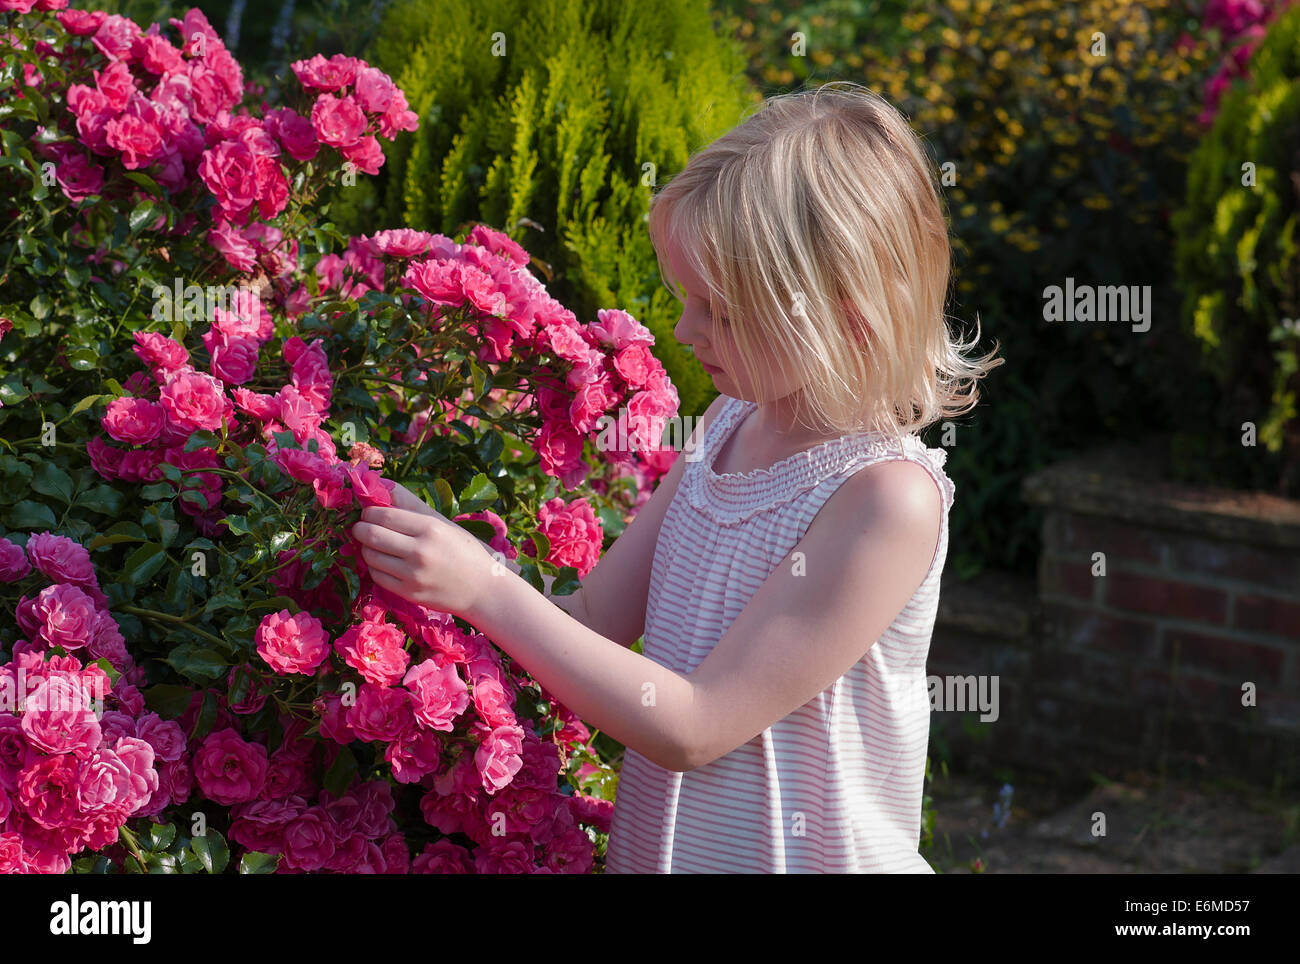 Young girl inspecting pink roses for 'creepy crawlies' - Stock Image